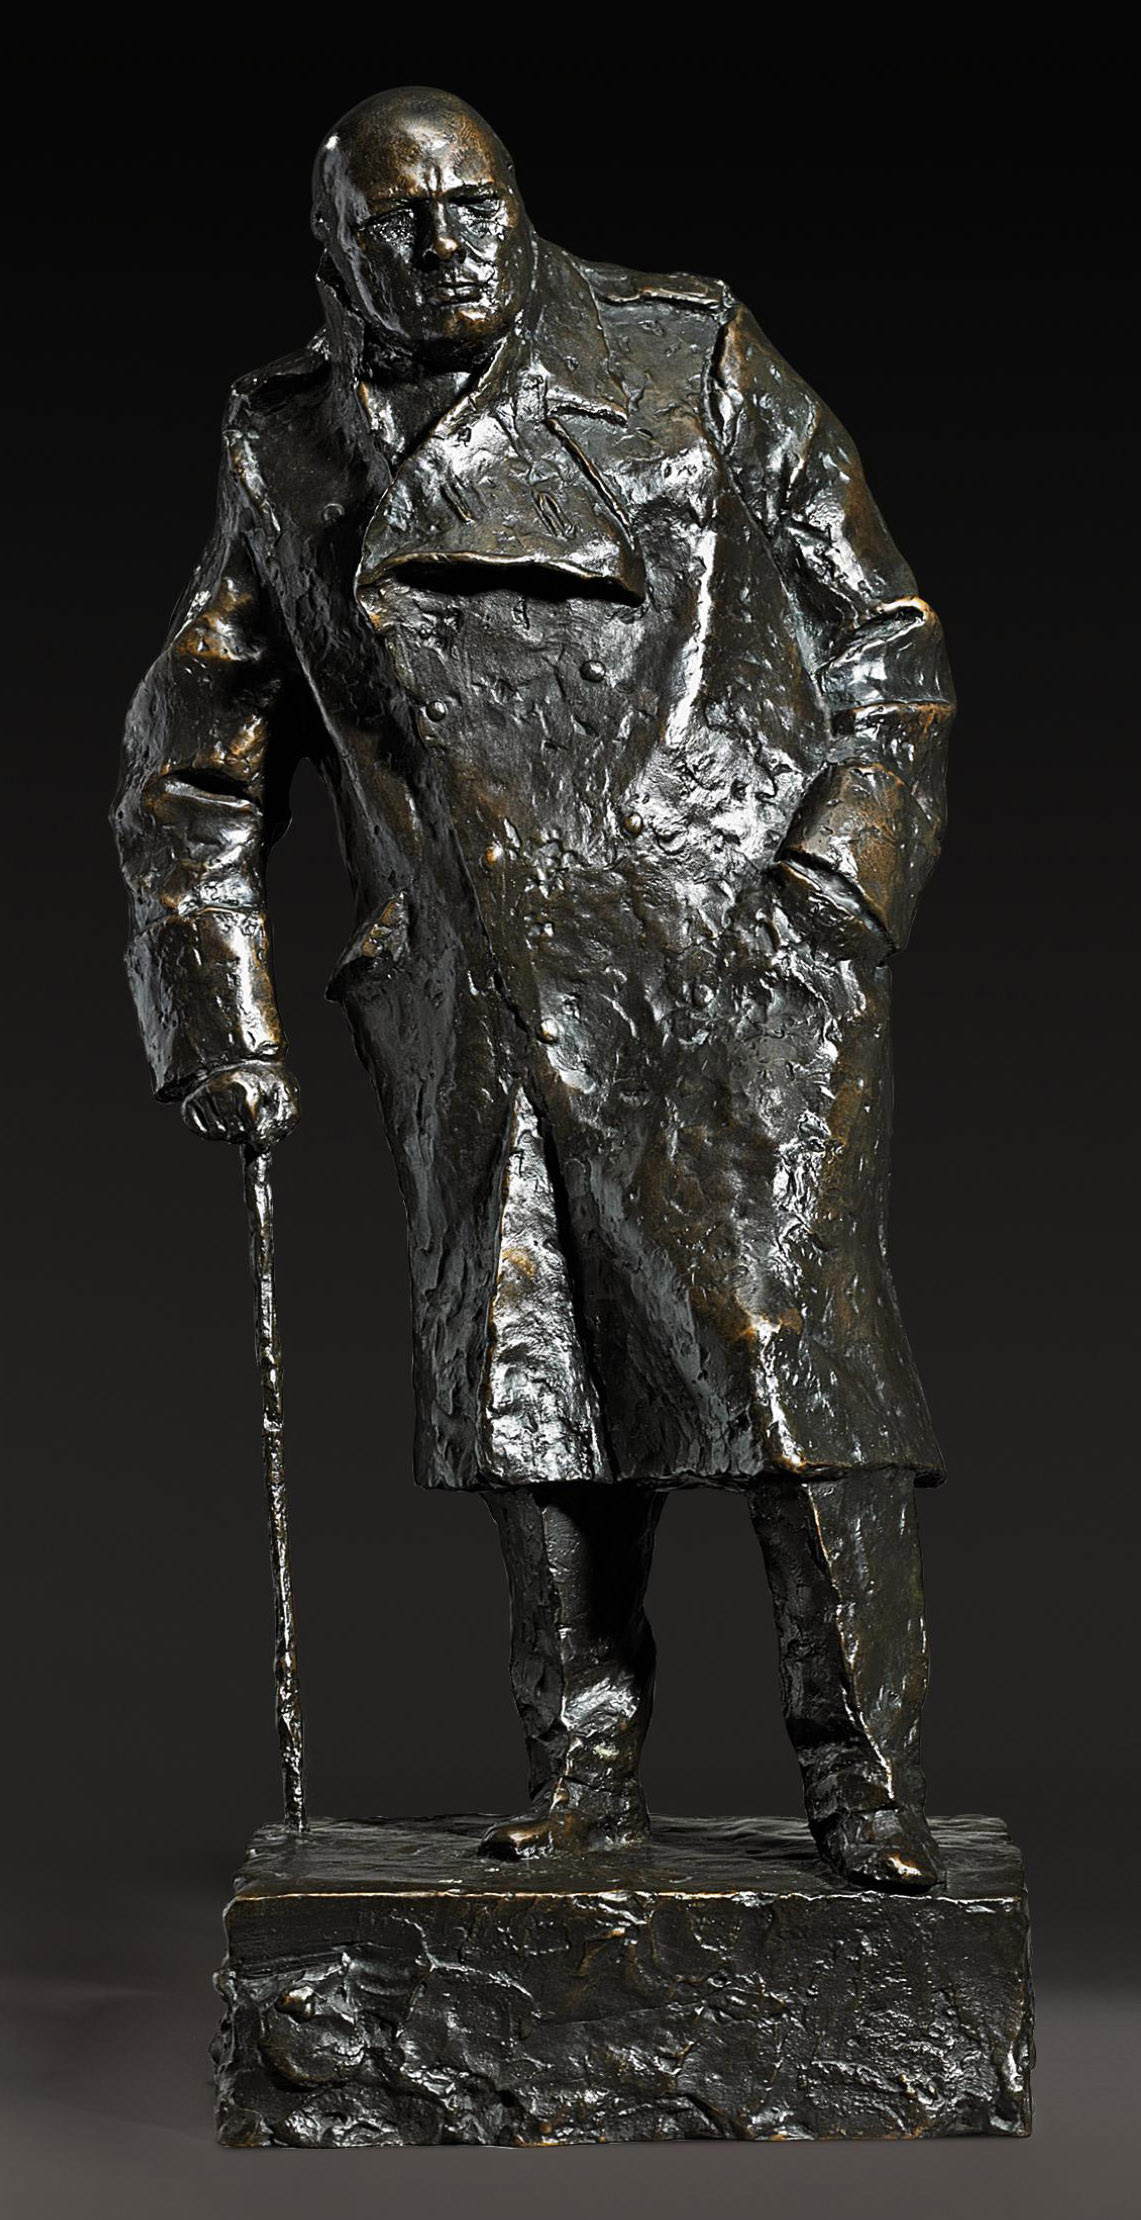 Maquette for the Winston Churchill Monument in Parliament Square